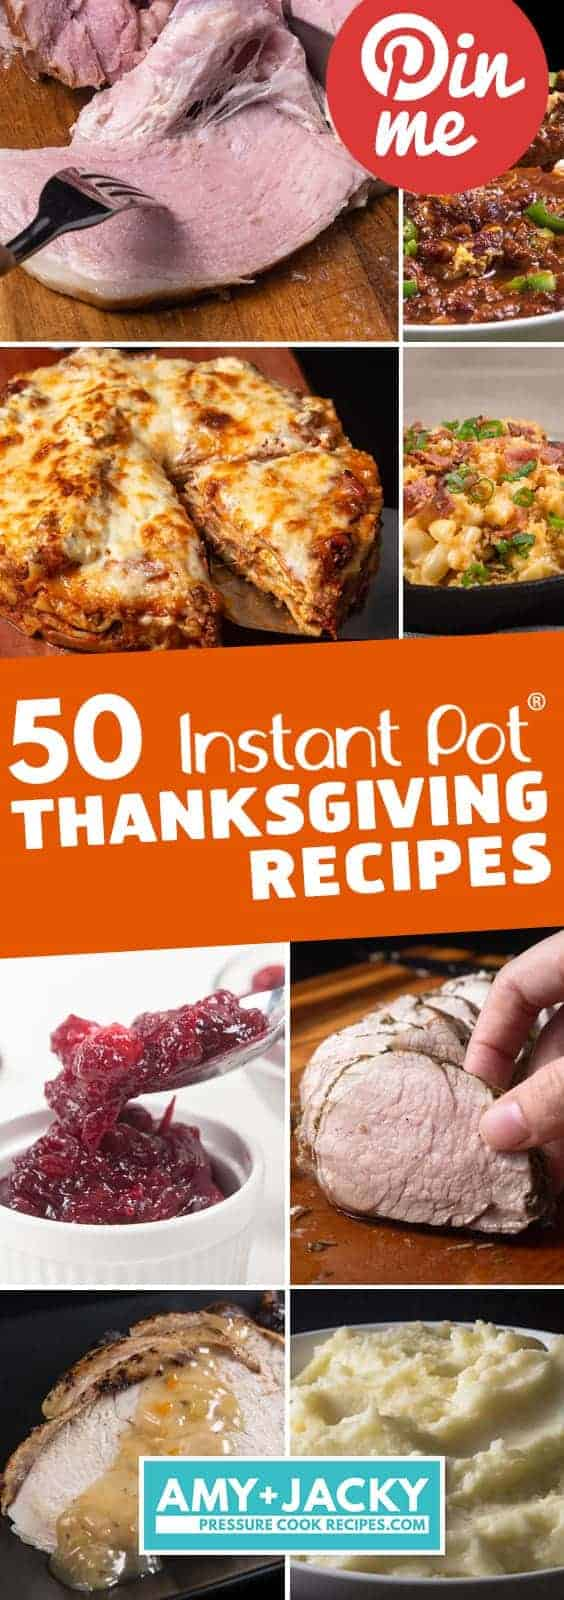 Instant Pot Thanksgiving Recipes | Pressure Cooker Thanksgiving Recipes | Instant Pot Holiday Recipes | Instant Pot Christmas Recipes | Pressure Cooker Christmas Recipes | Friendsgiving dinner | Instant Pot Turkey | Instant Pot Ham | Instant Pot Desserts | Instant Pot Recipes #instantpot #pressurecooker #recipes #holiday #thanksgiving #christmas